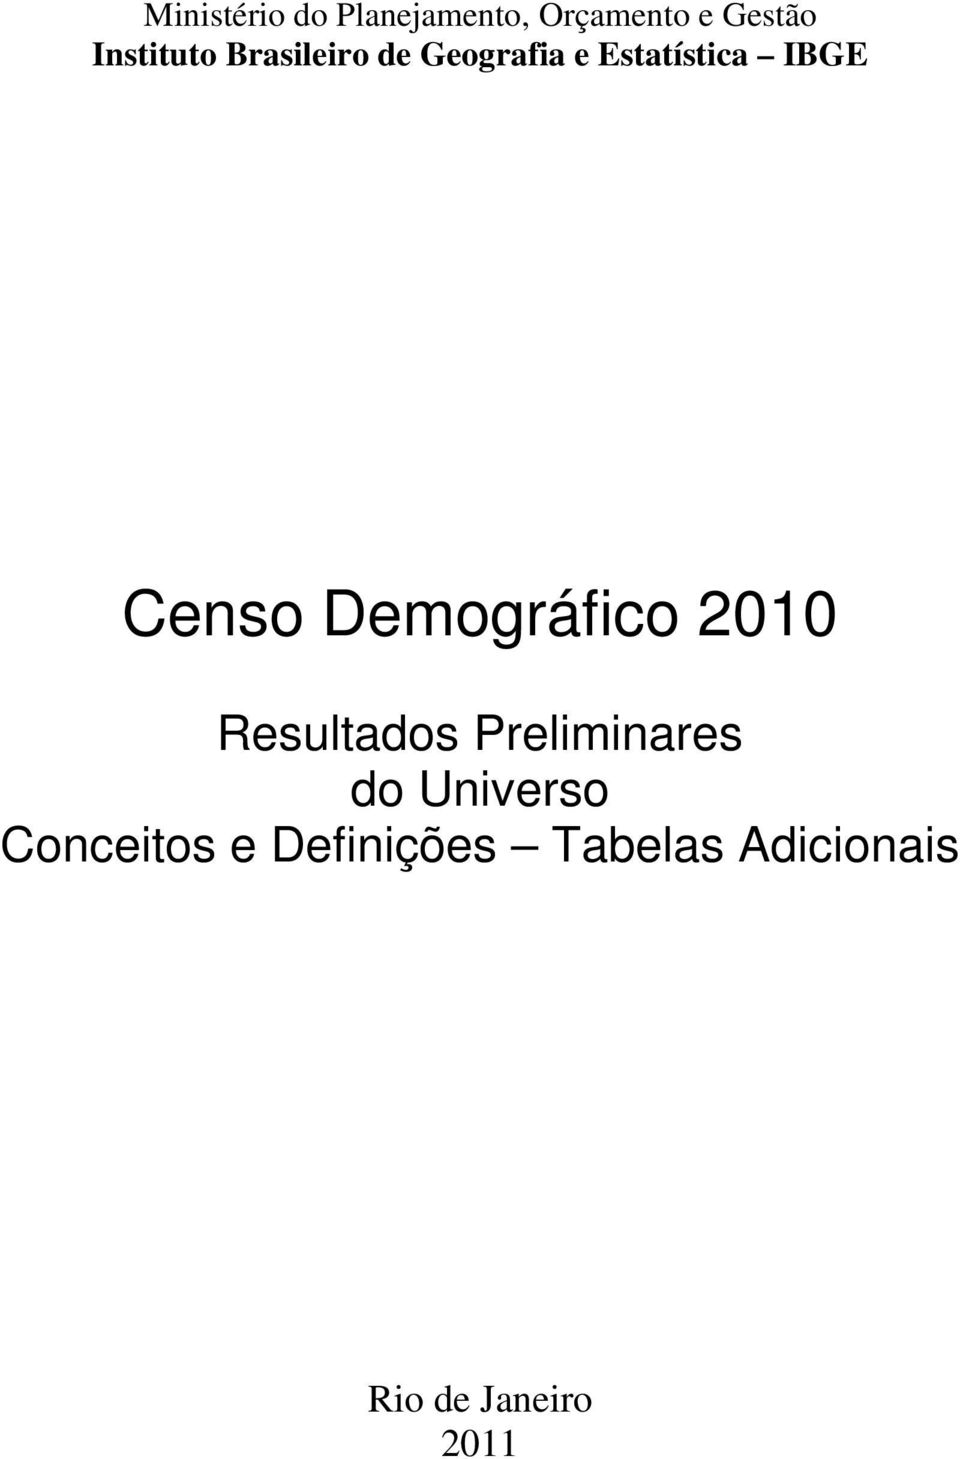 Censo Demográfico 2010 Resultados Preliminares do